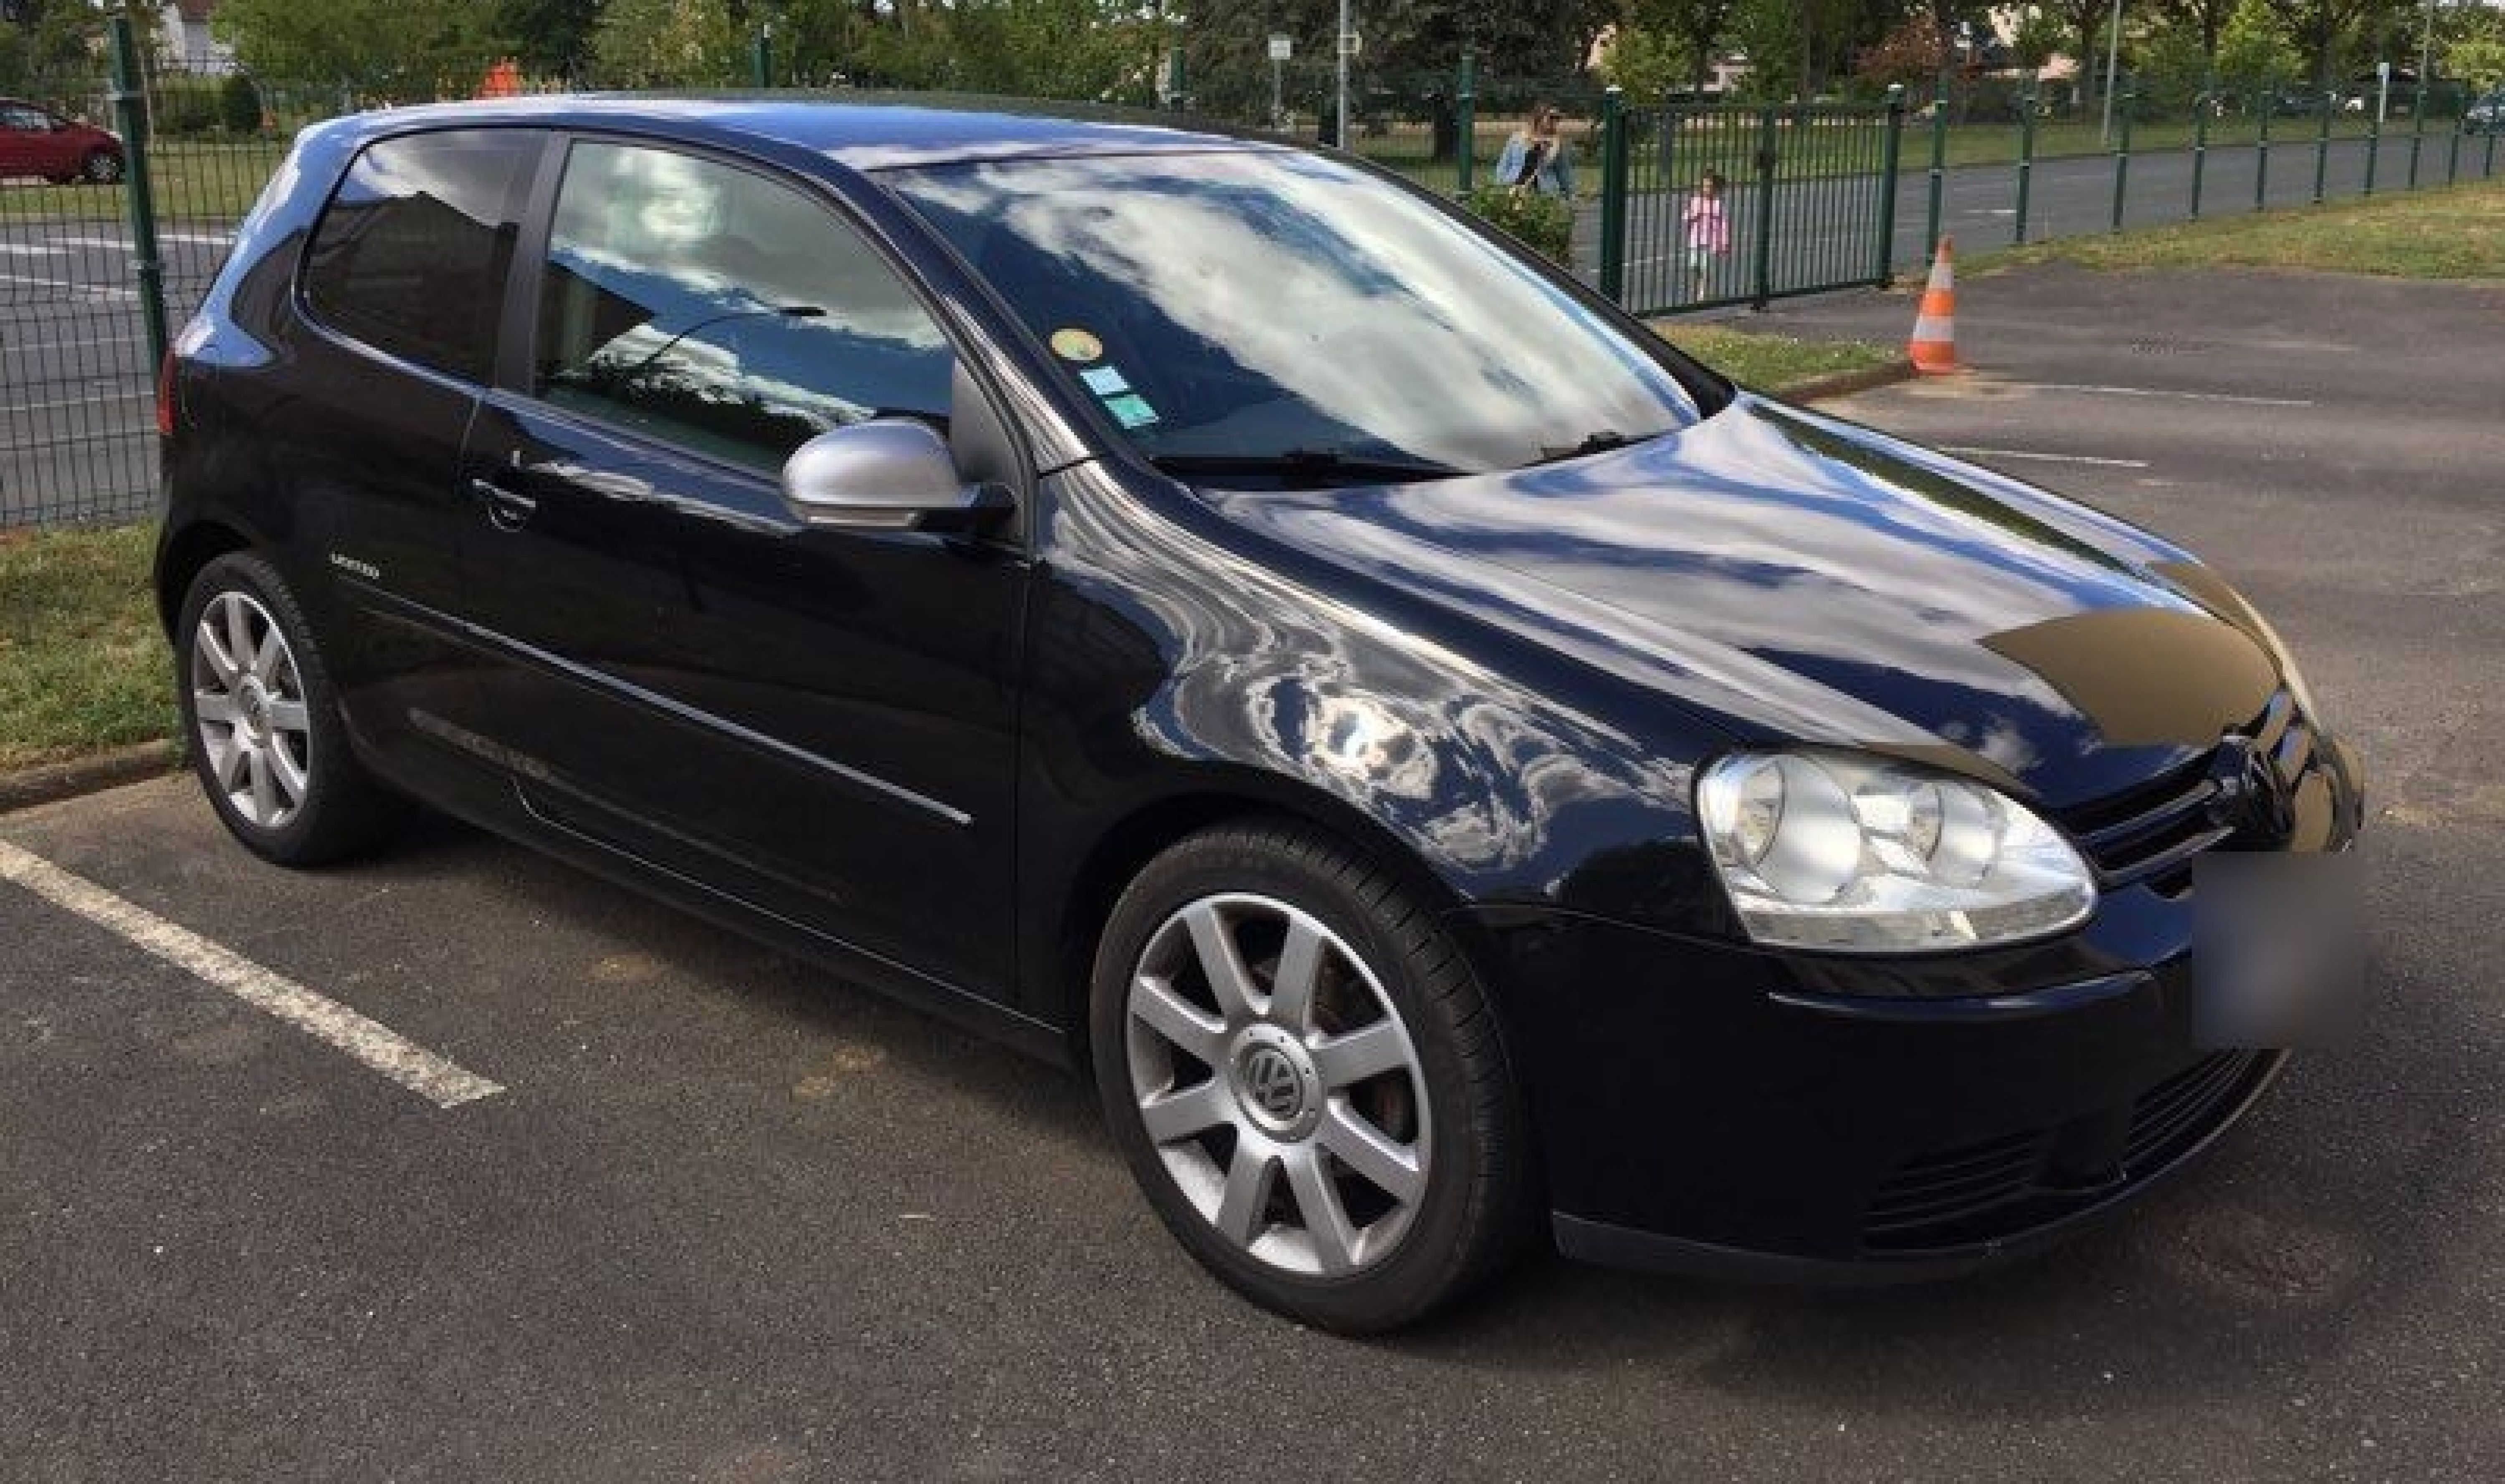 Golf v 1.9 tdi  - Photo 1